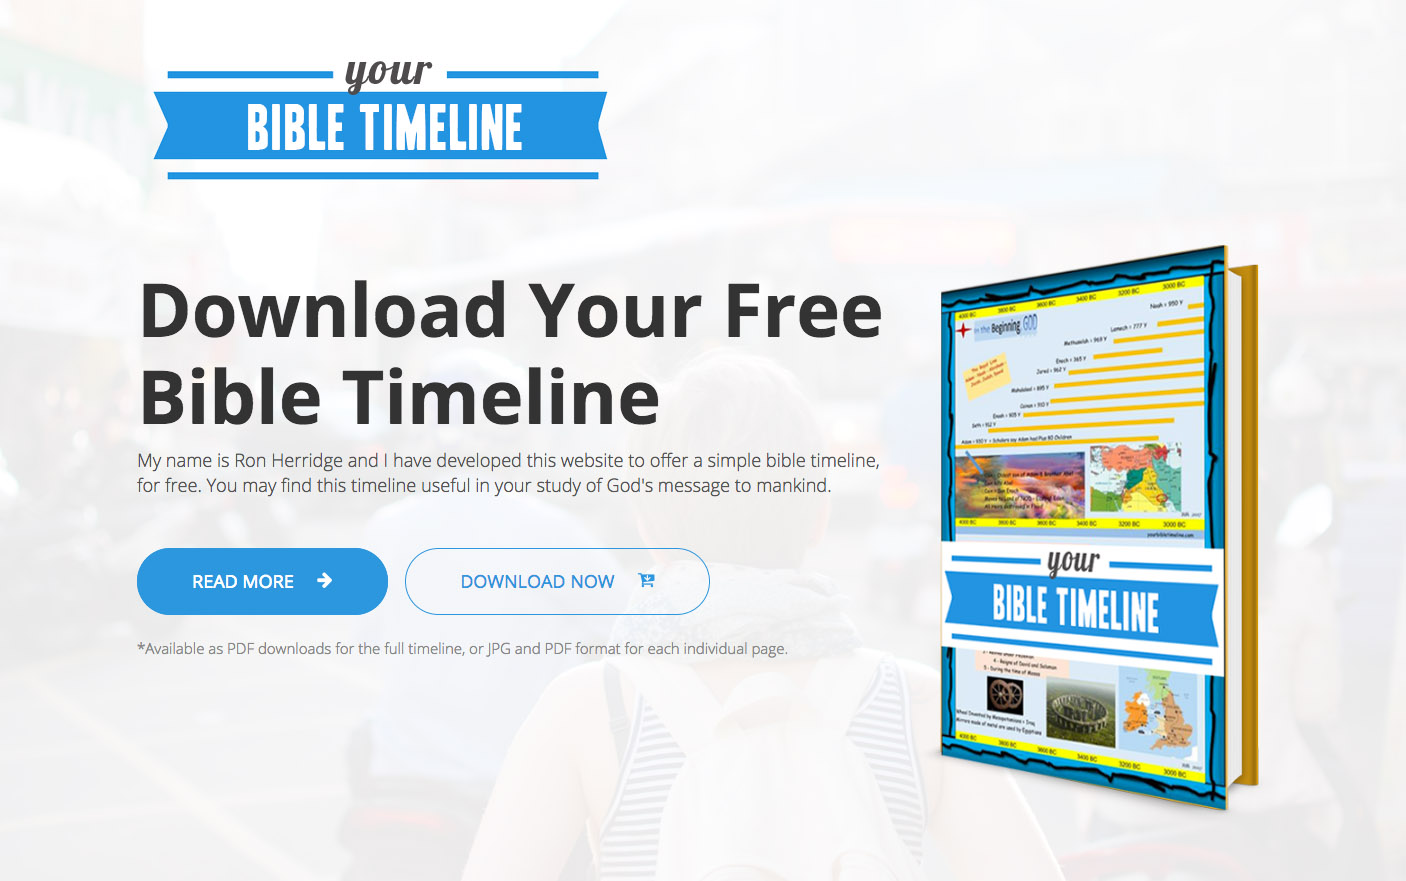 Ron Herridge Releases A Free Bible Timeline Download